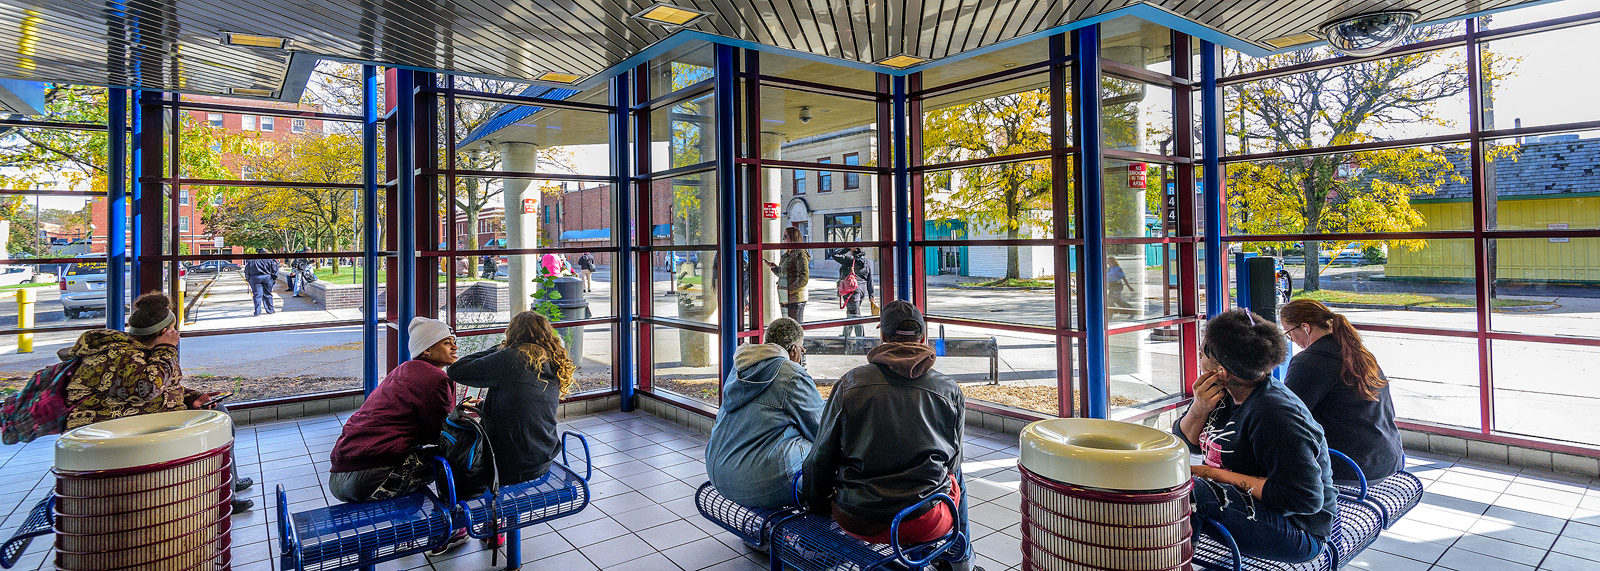 The Ypsilanti Transit Center